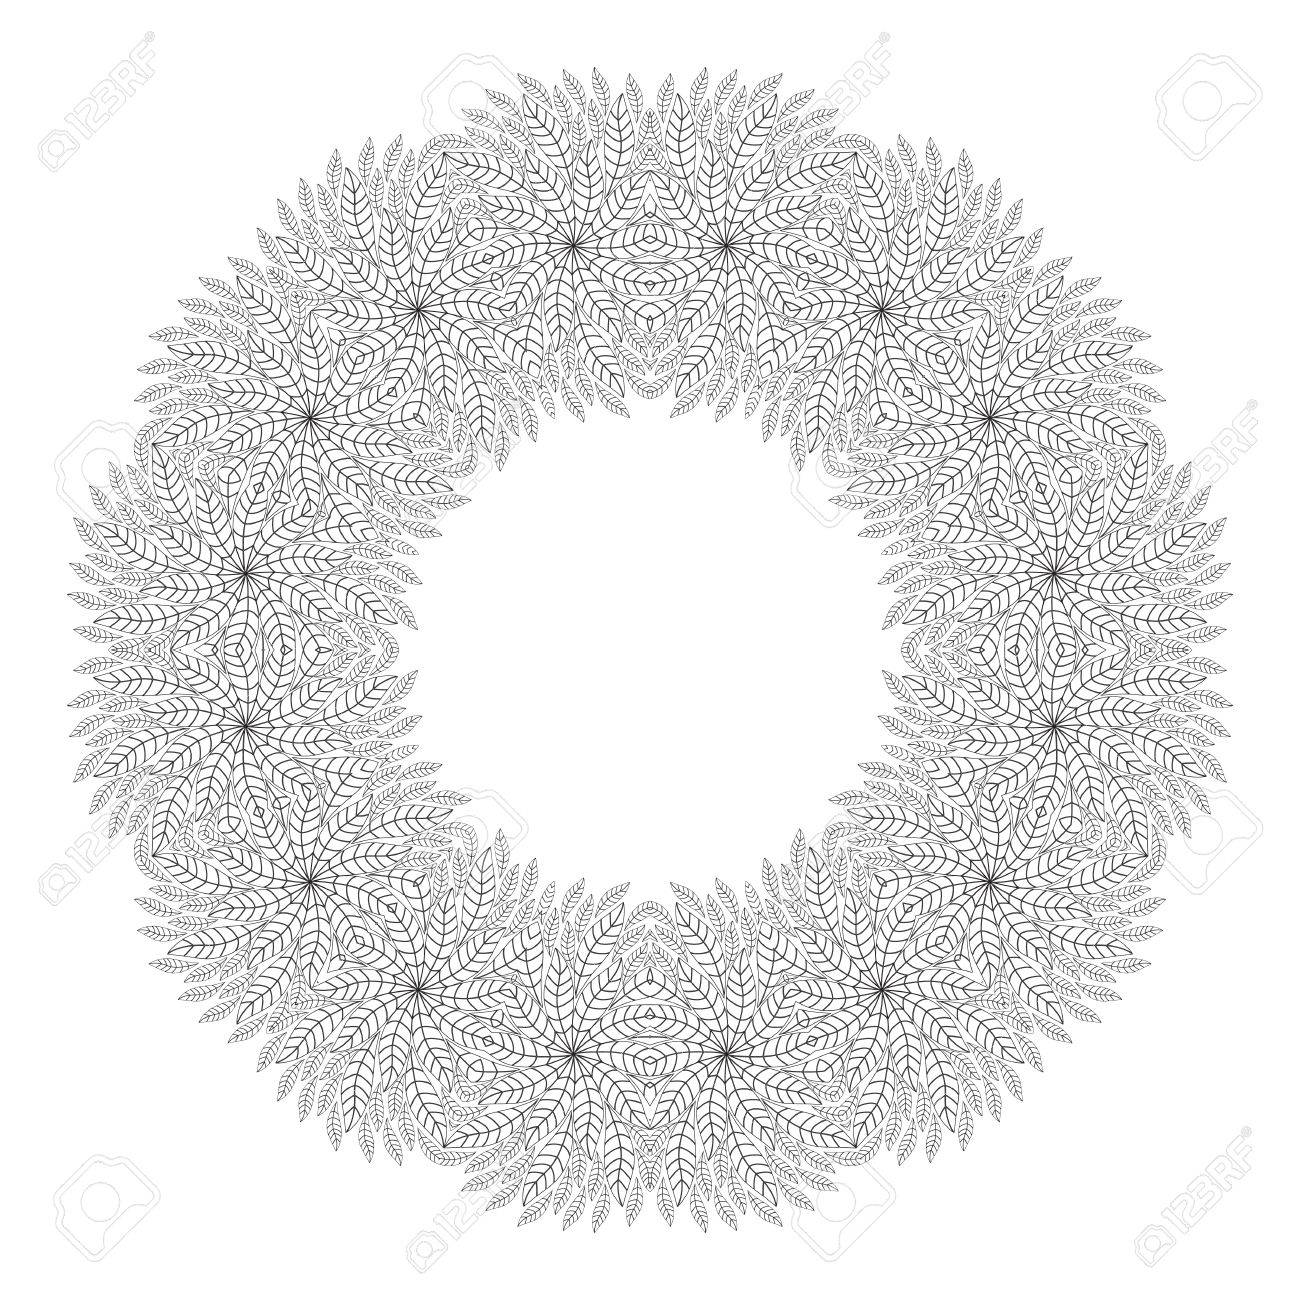 Christmas Wreath Coloring Page Ethnicity Floral Round Ornament Circular In